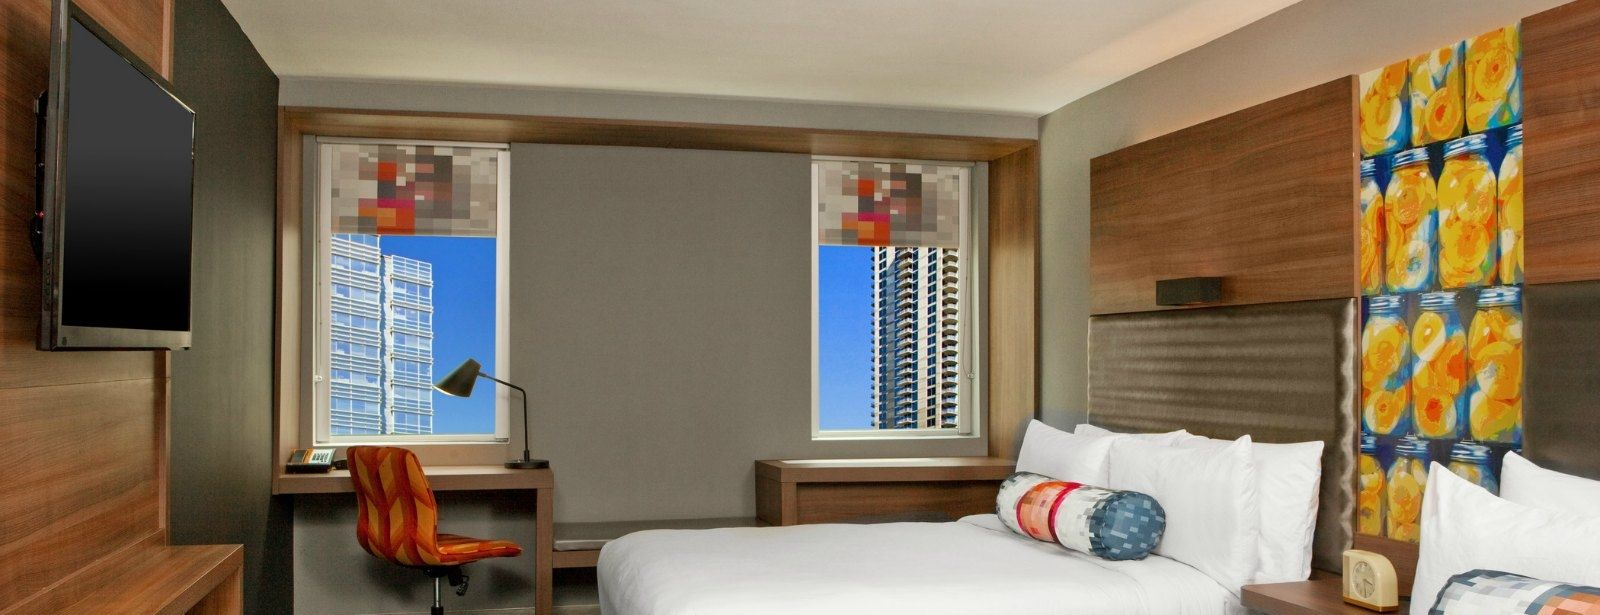 Downtown Atlanta Accommodations - Aloft Double Queen Room